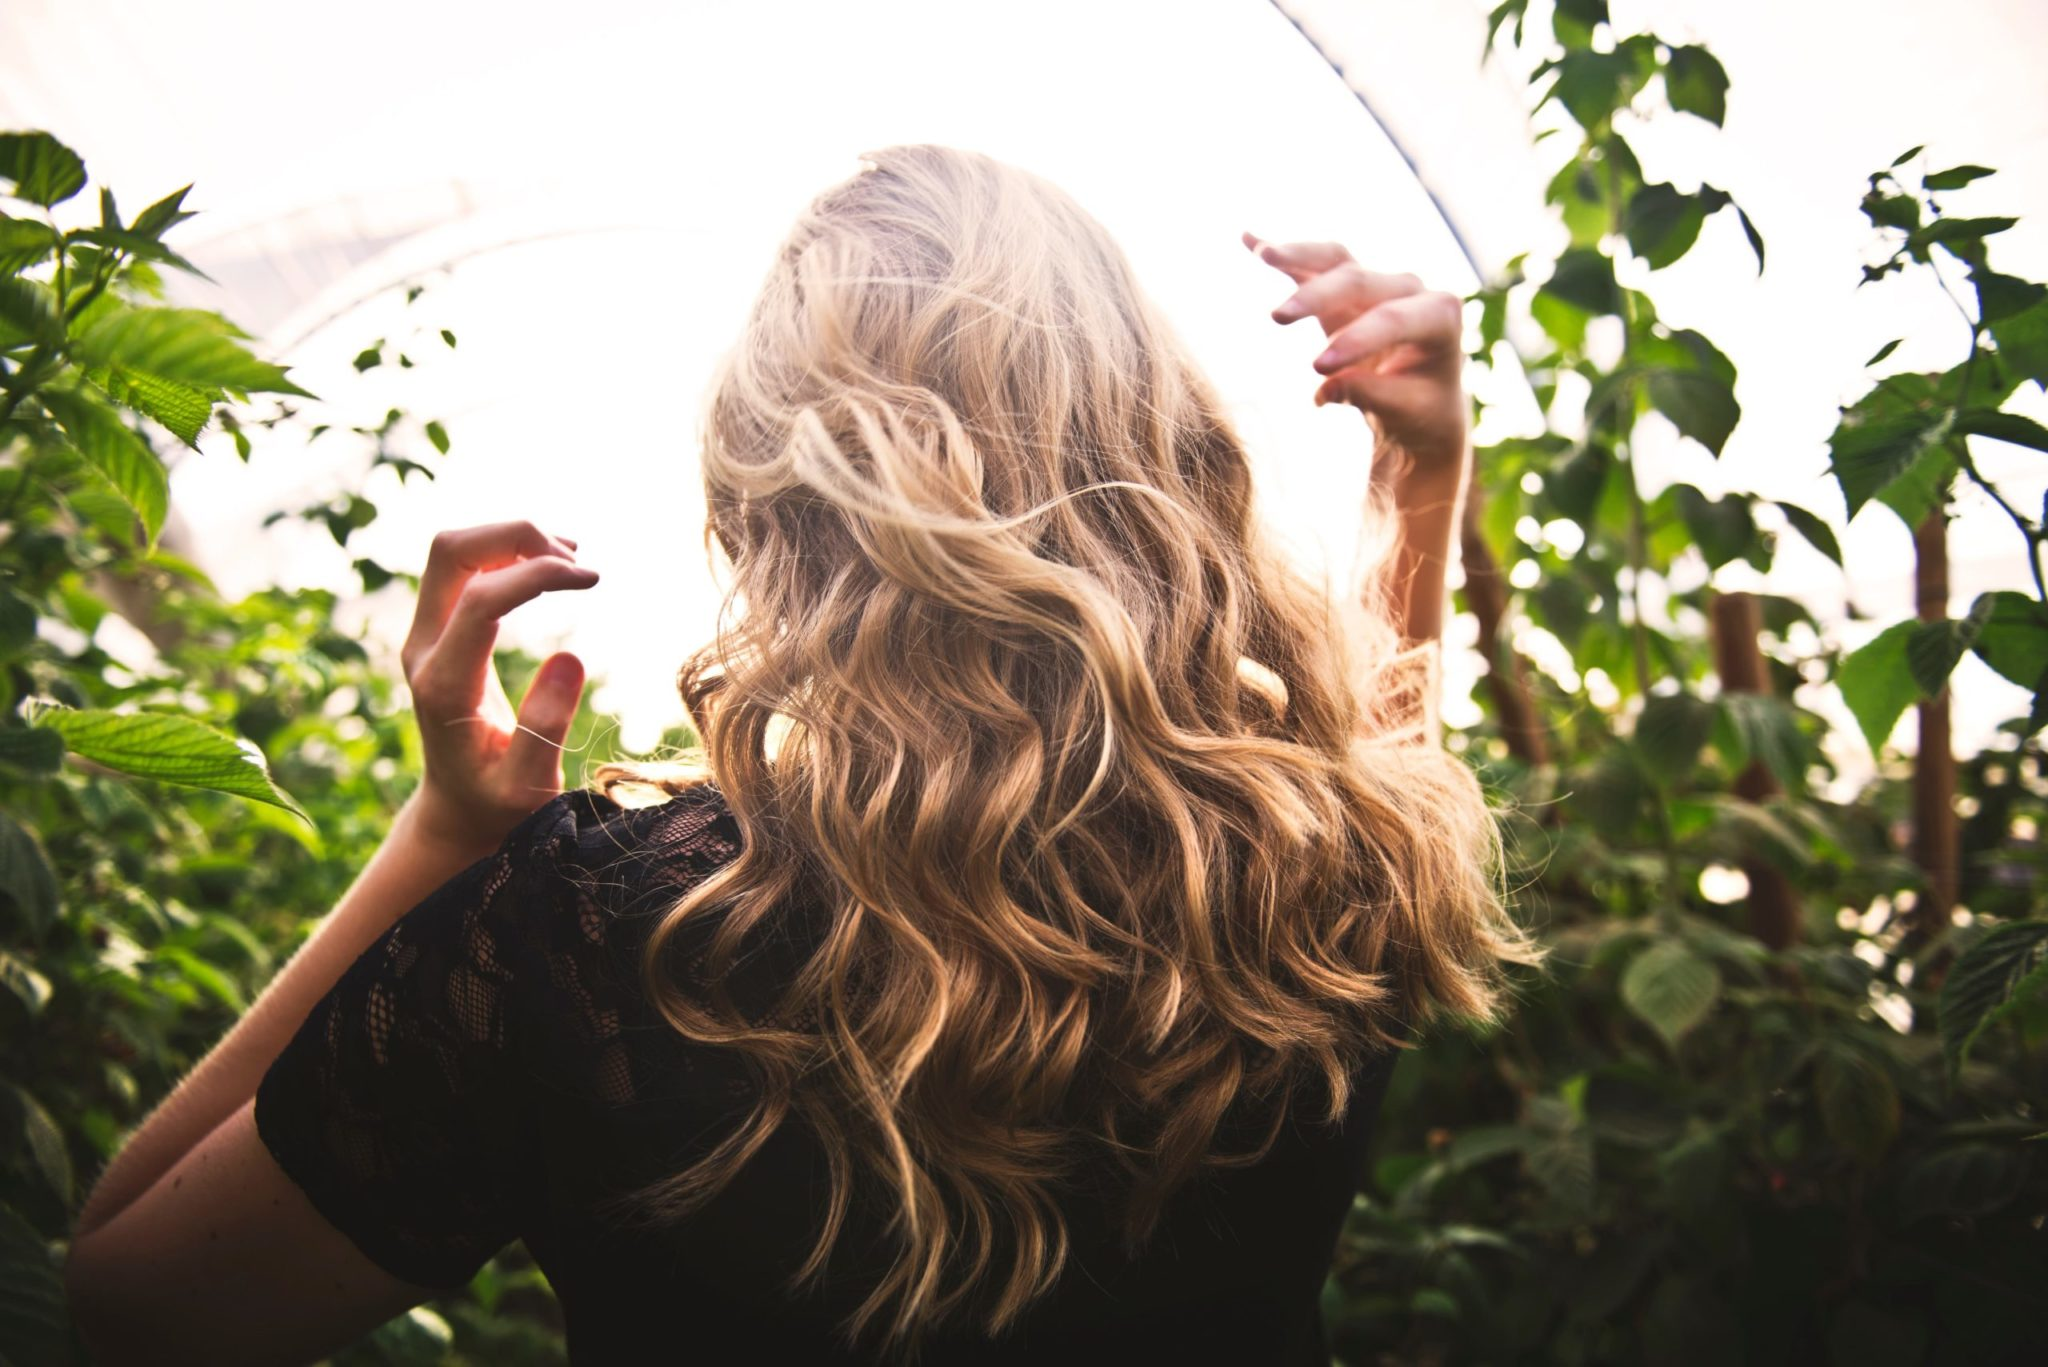 Cheveux Secs : Que Faire ? Guide Ultime du Soin au Naturel